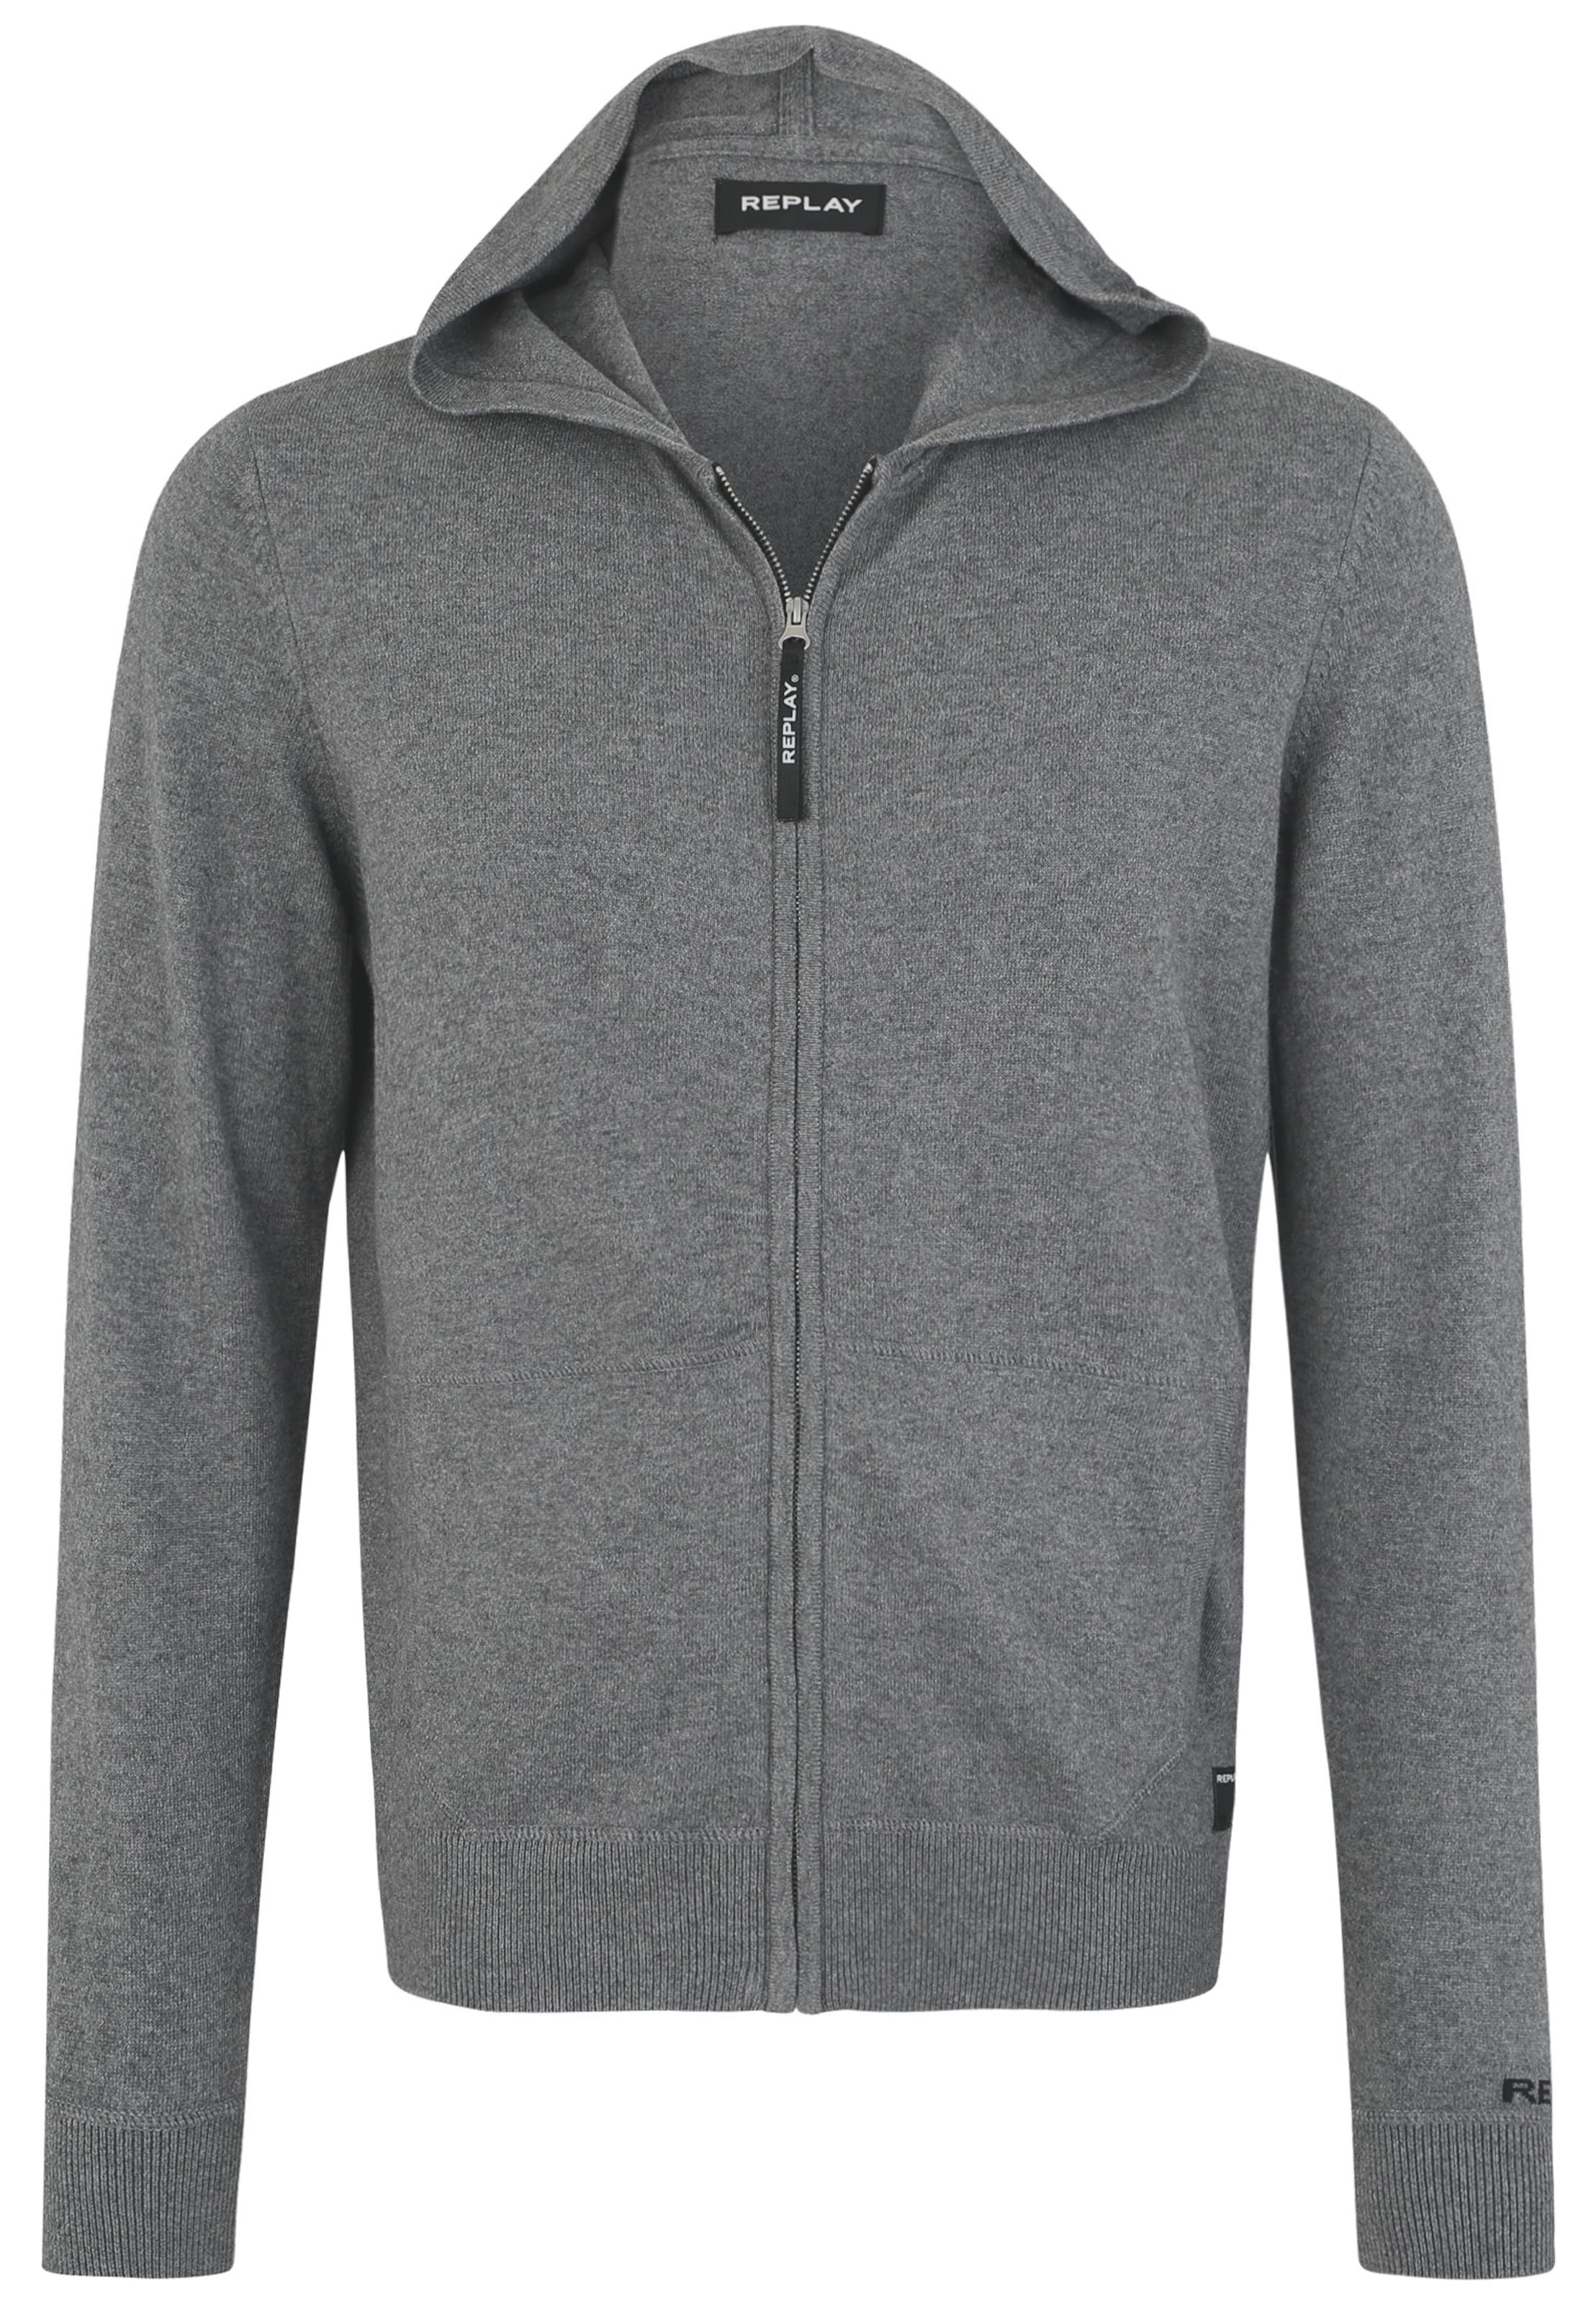 Grau In Replay Strickjacke Kapuze Mit QdxotChsrB